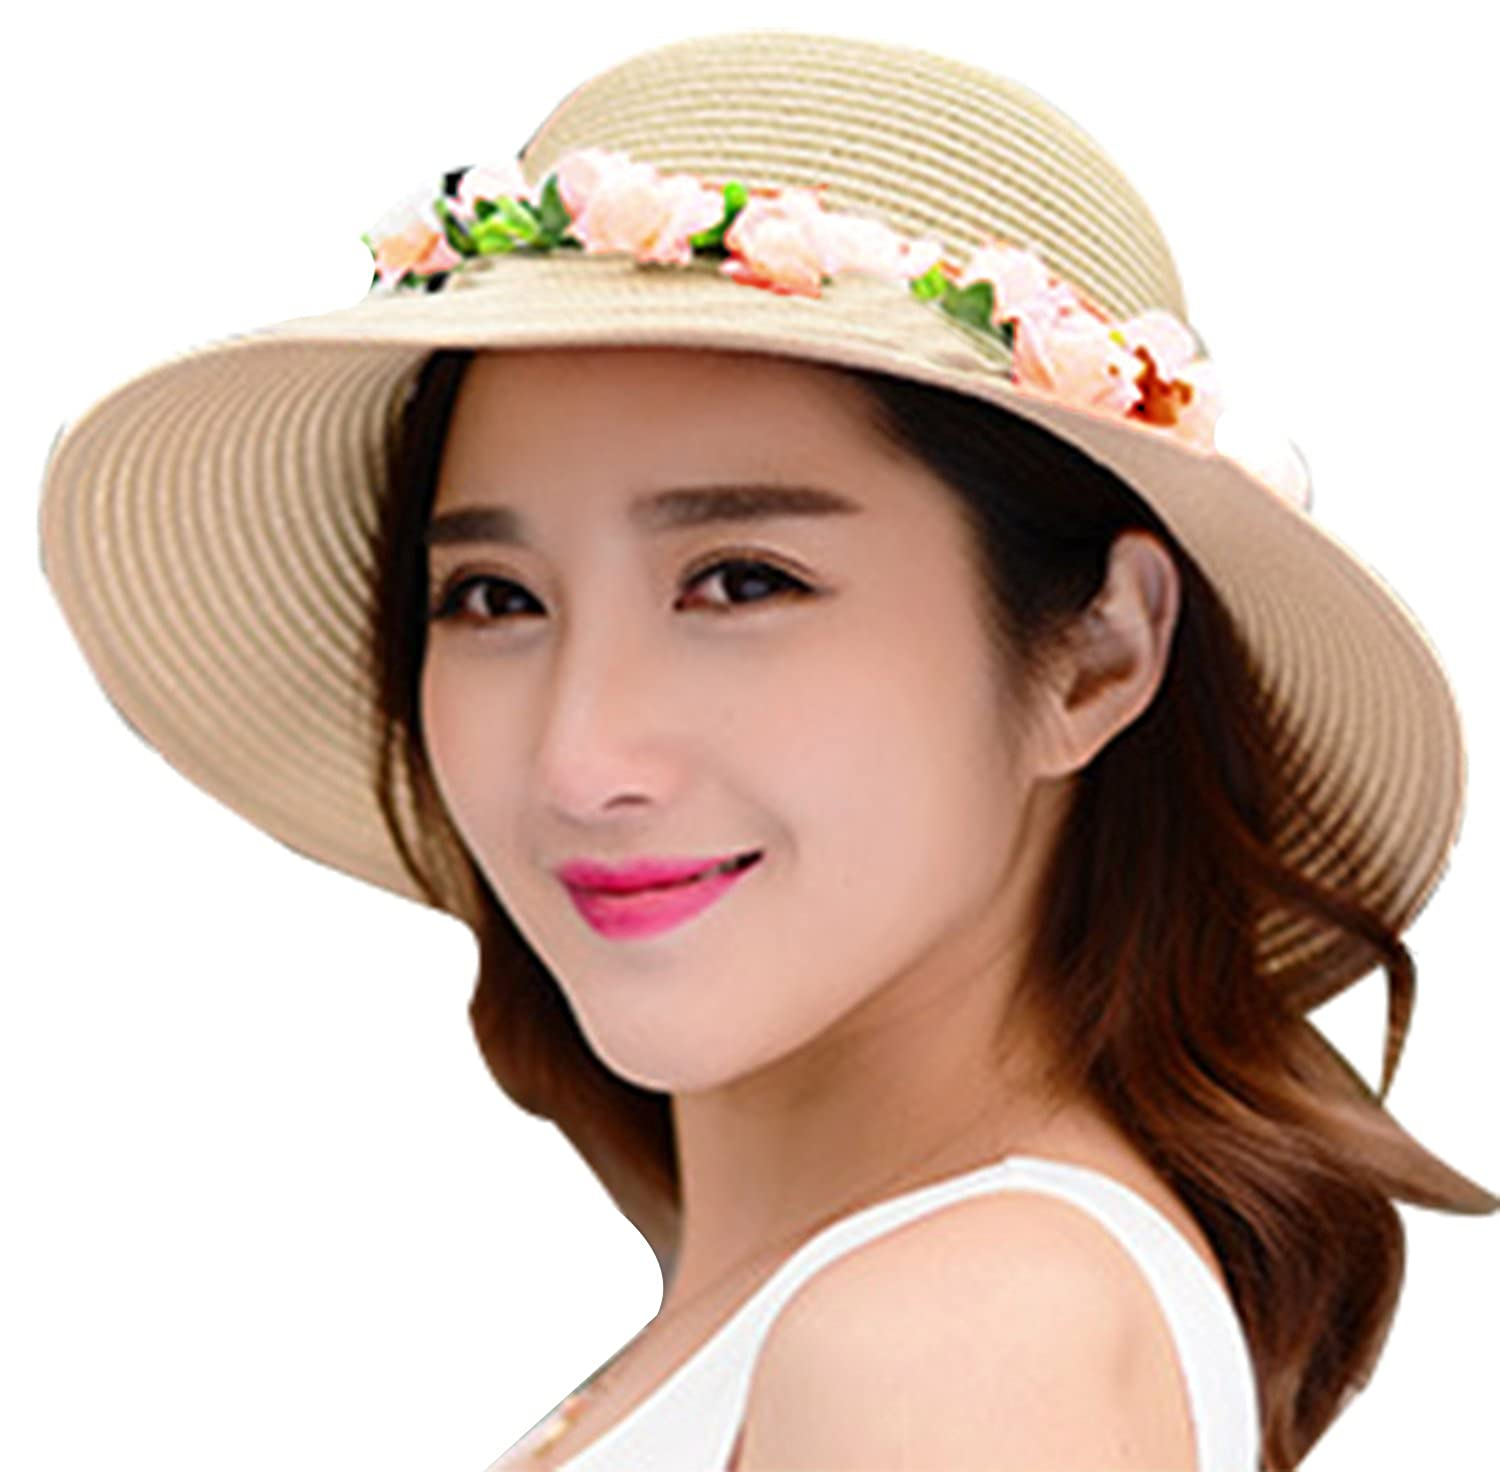 b674473c534ea Amazon.com  Lovful Womens Spring Summer Sun Protection Floppy Hats Travel  Outdoor Beach Visor Straw Hats with Flower